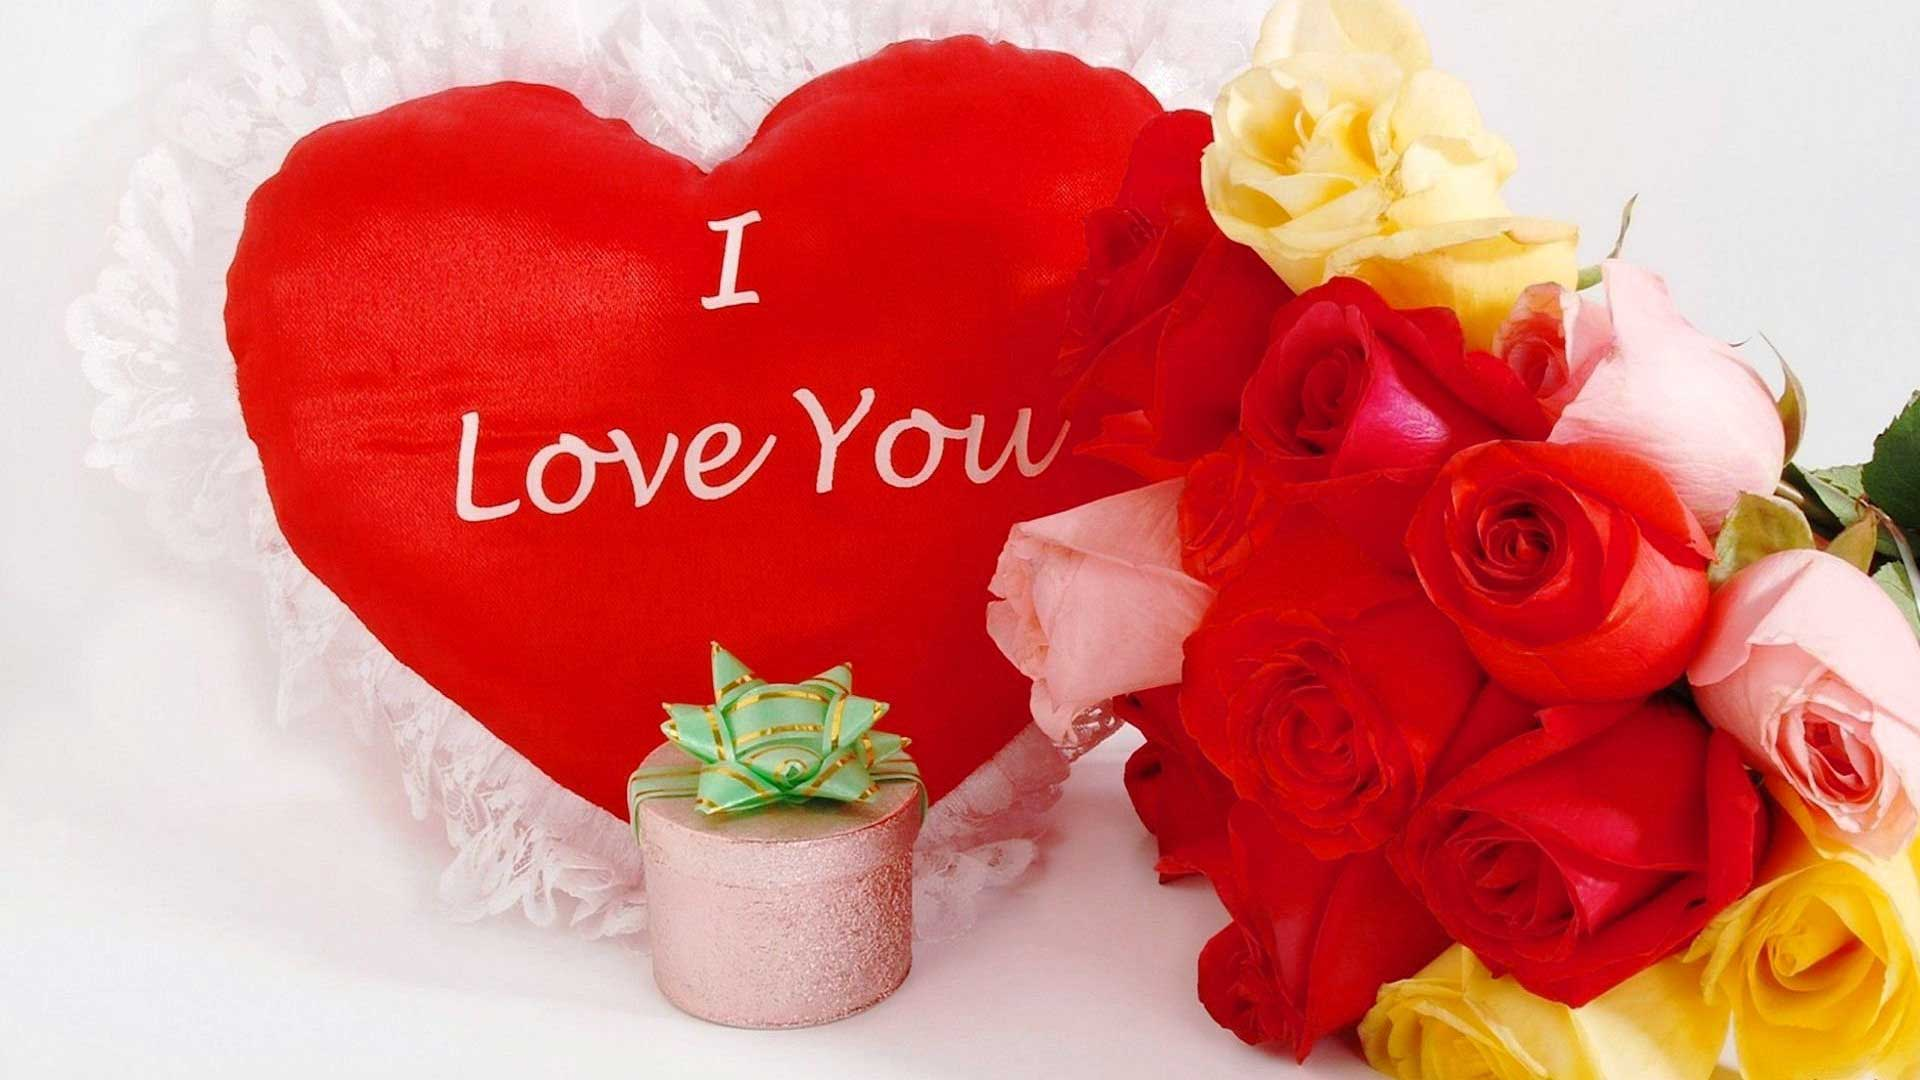 Wallpaper I Love You Janu : I Love You Janu Wallpaper Best Wallpaper Reference